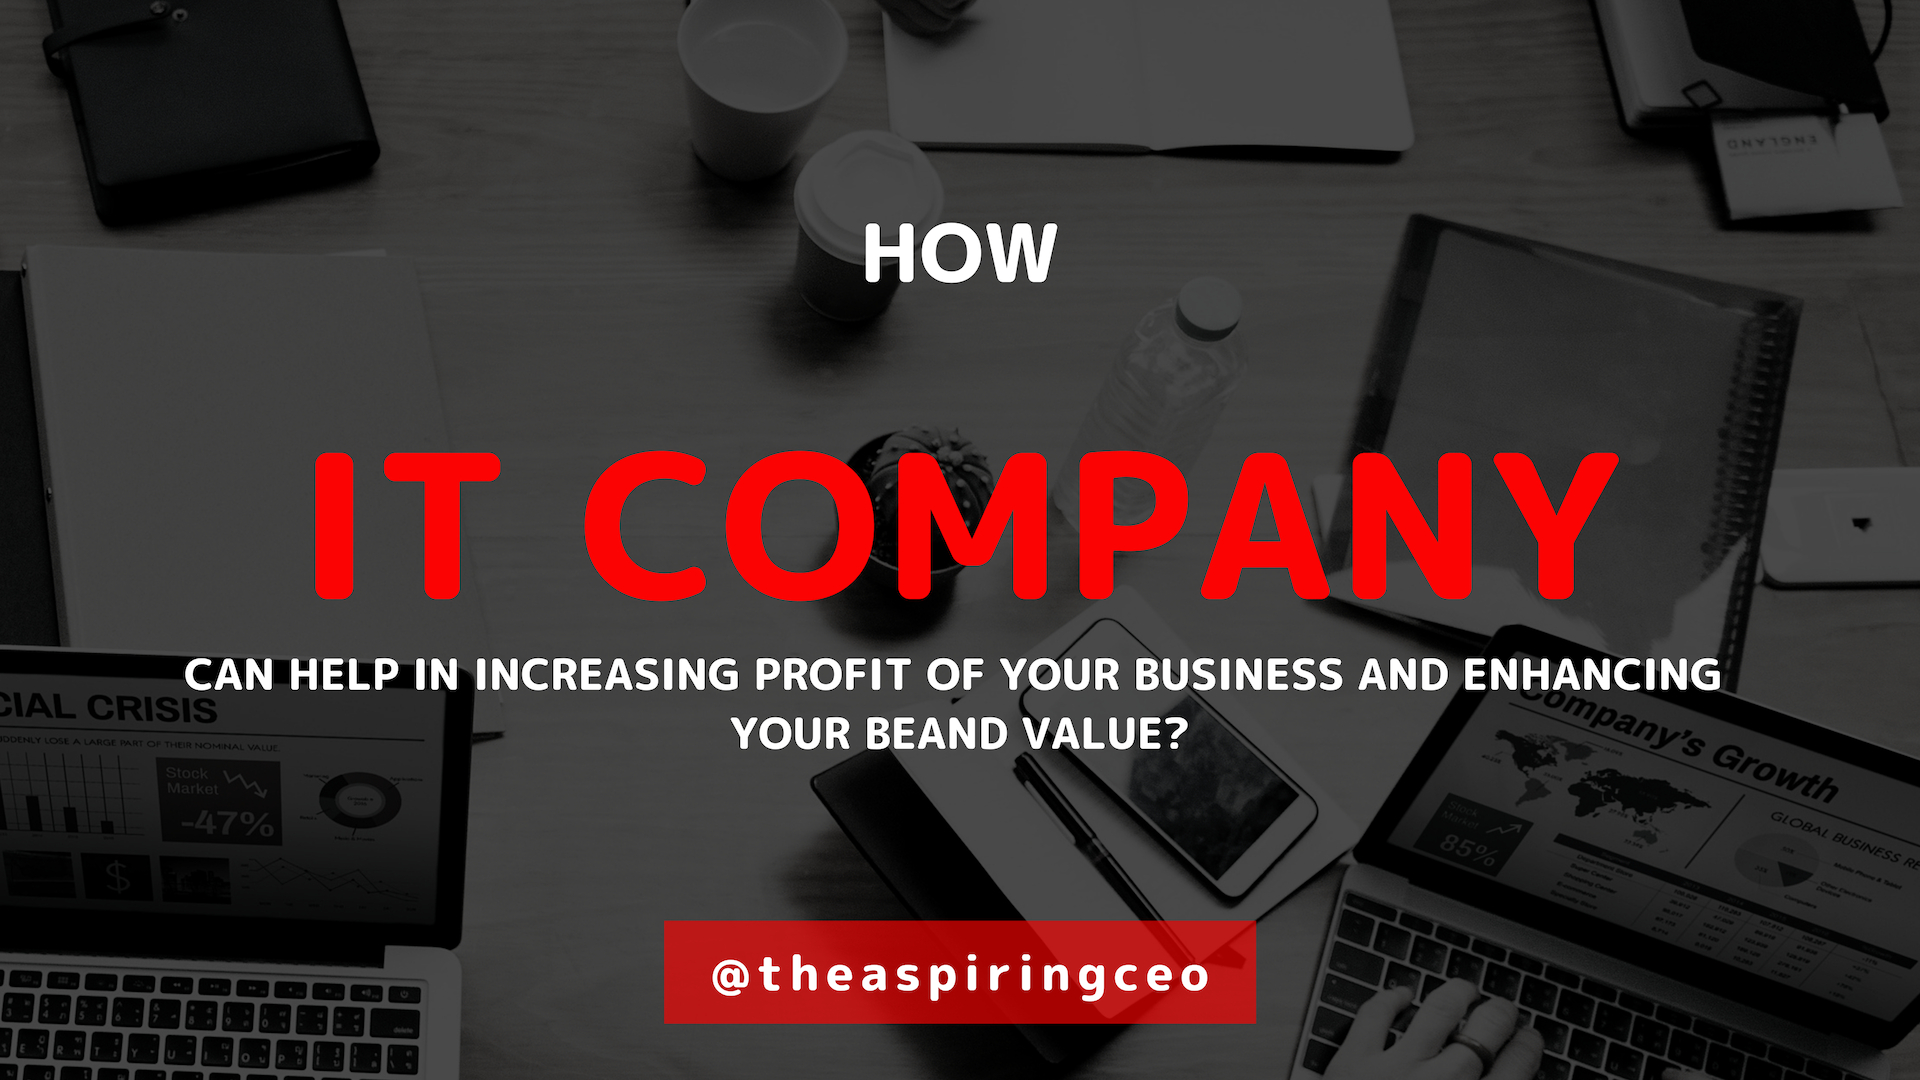 HOW IT COMPANY CAN HELP IN INCREASING PROFIT OF YOUR BUSINESS